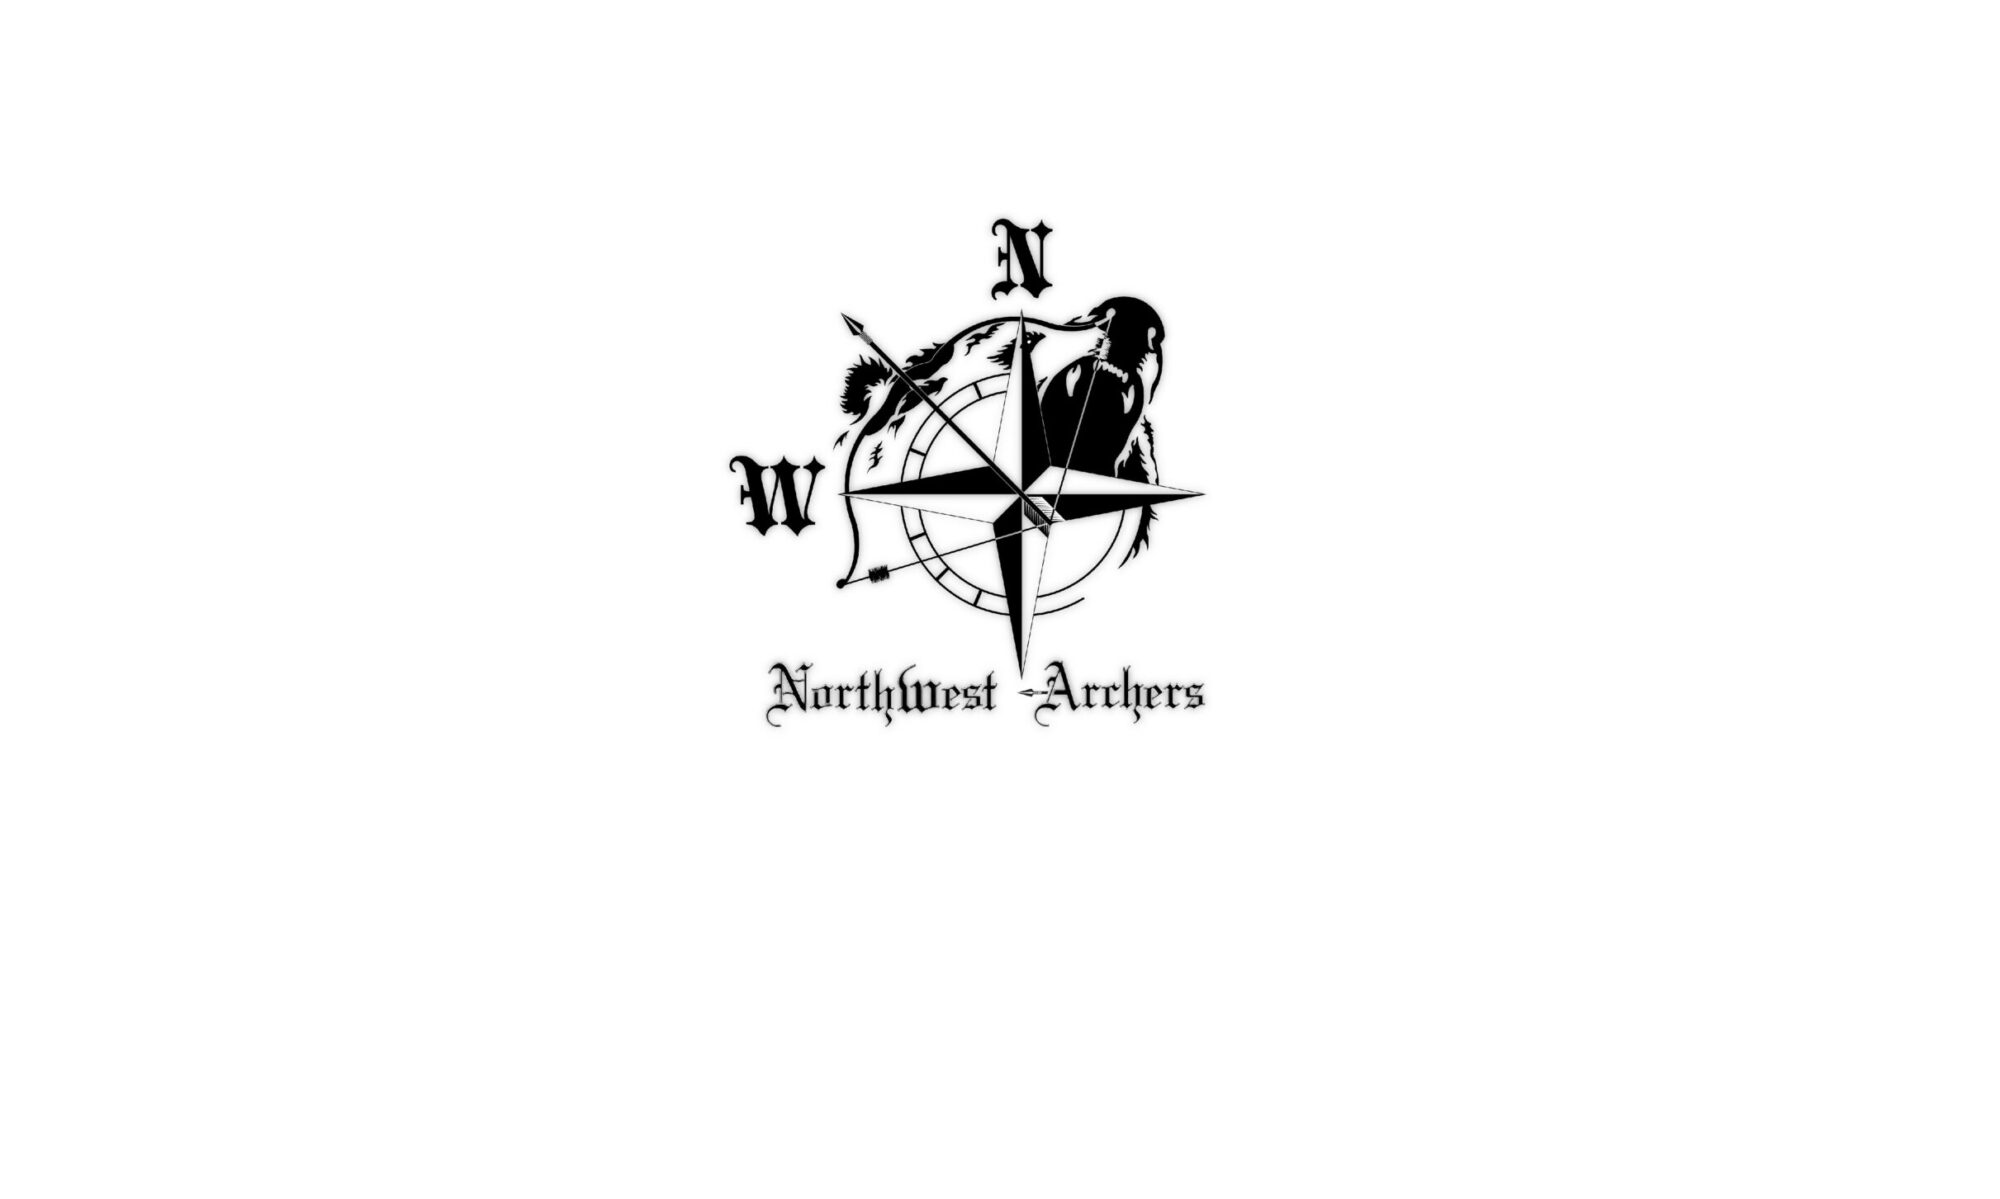 Northwest Archers